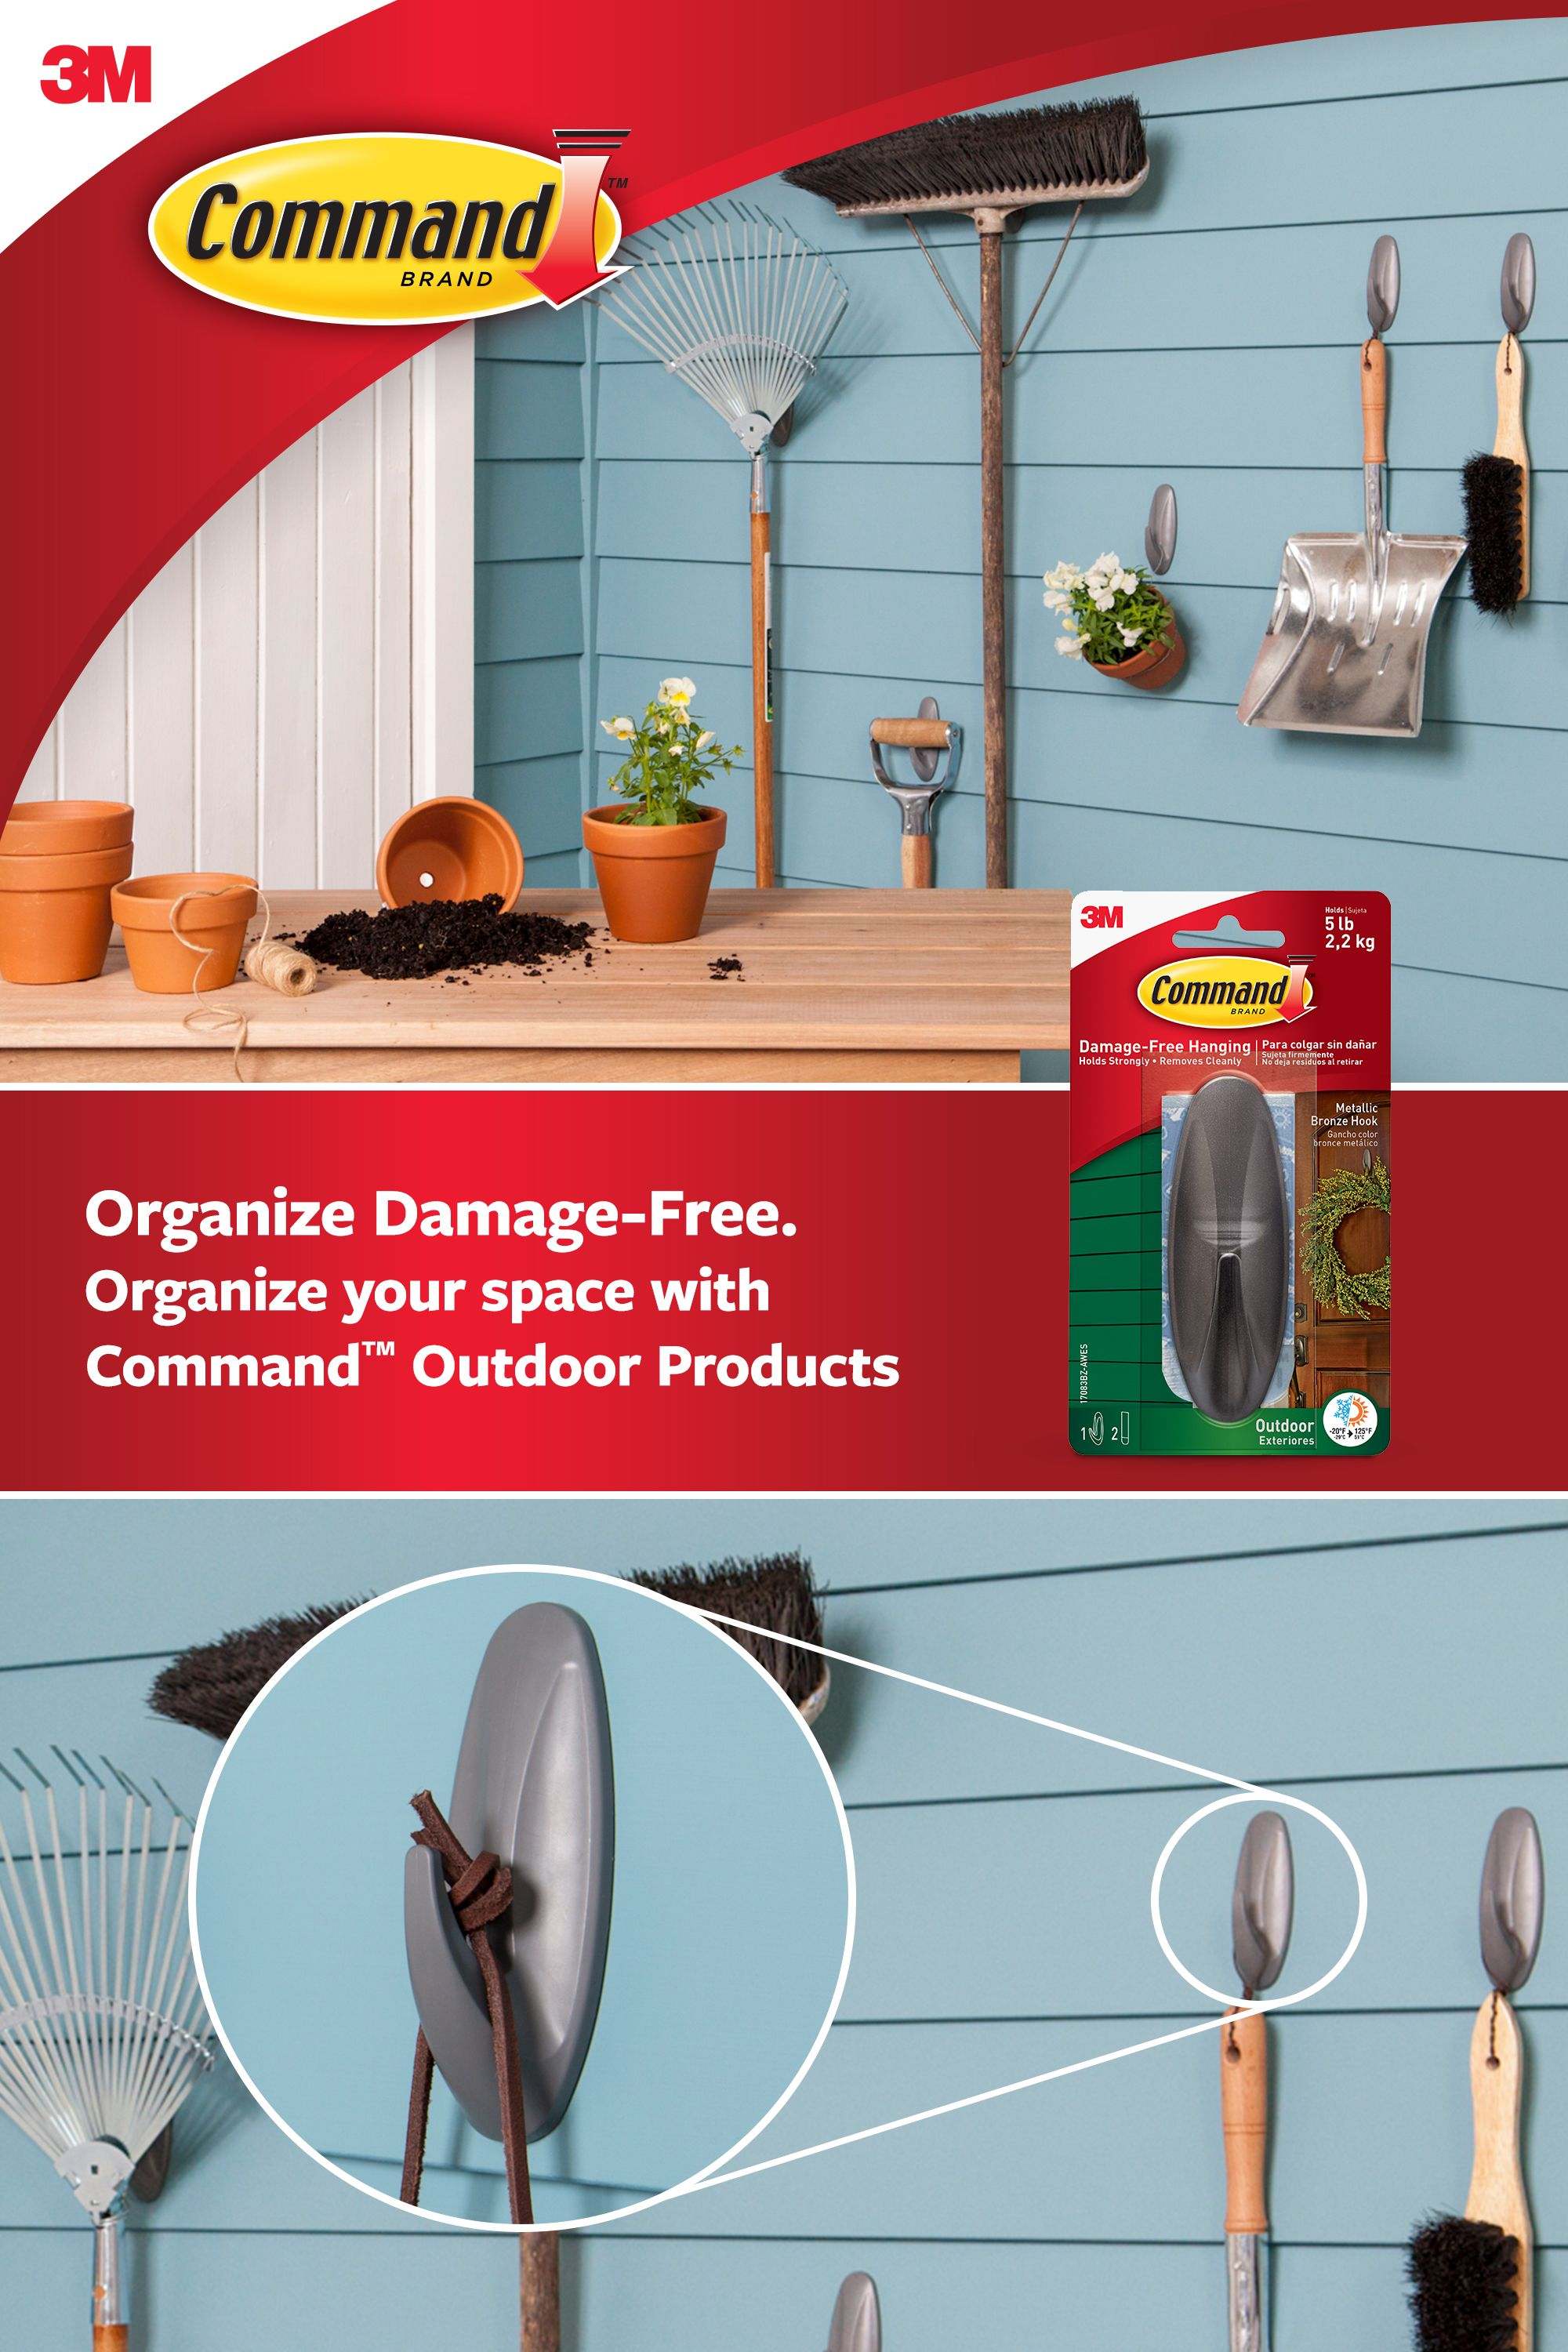 Command Outdoor Hooks In 2020 Hanging Wreath Garage Organization Tips Cool Things To Buy